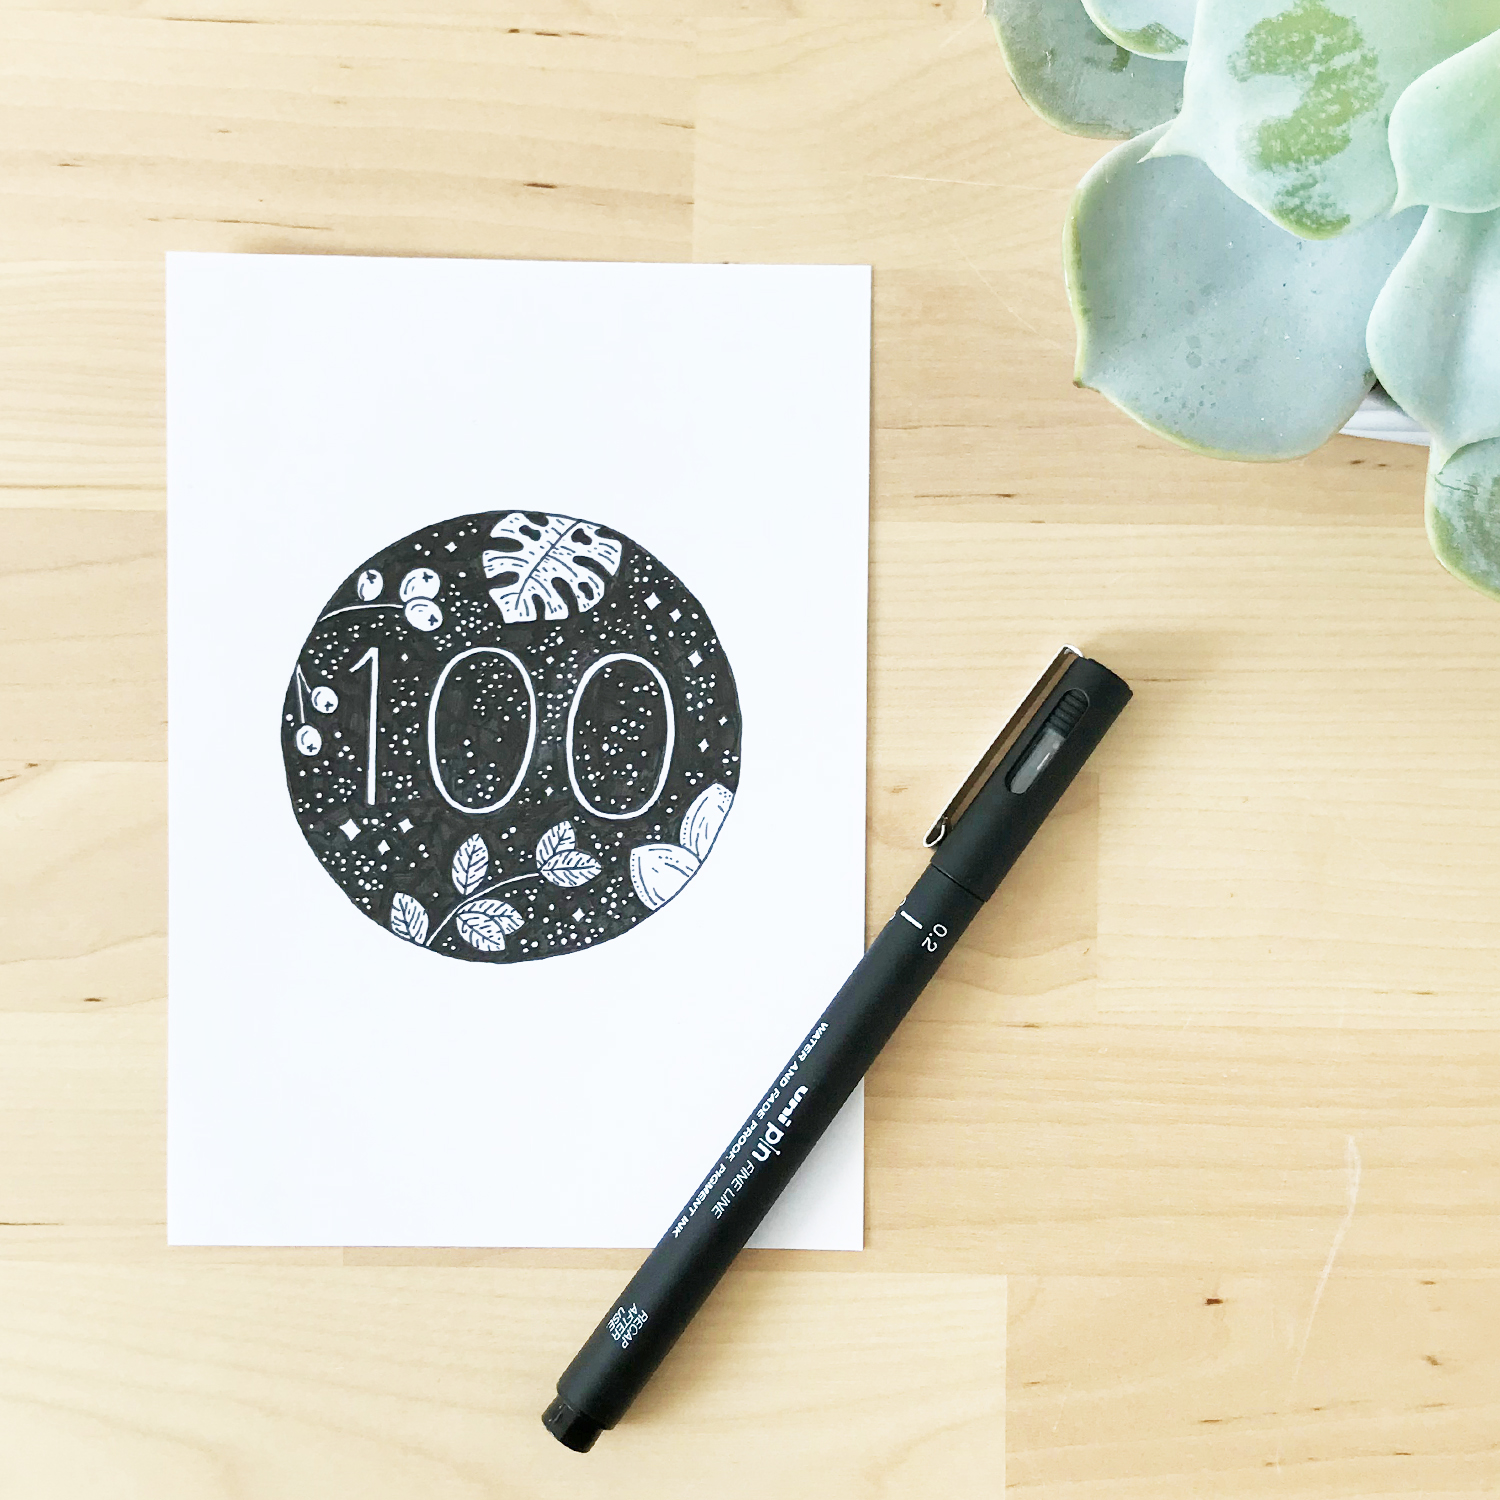 Sketchbook Illustration - the100dayproject - Bea & Bloom Creative Design Studio